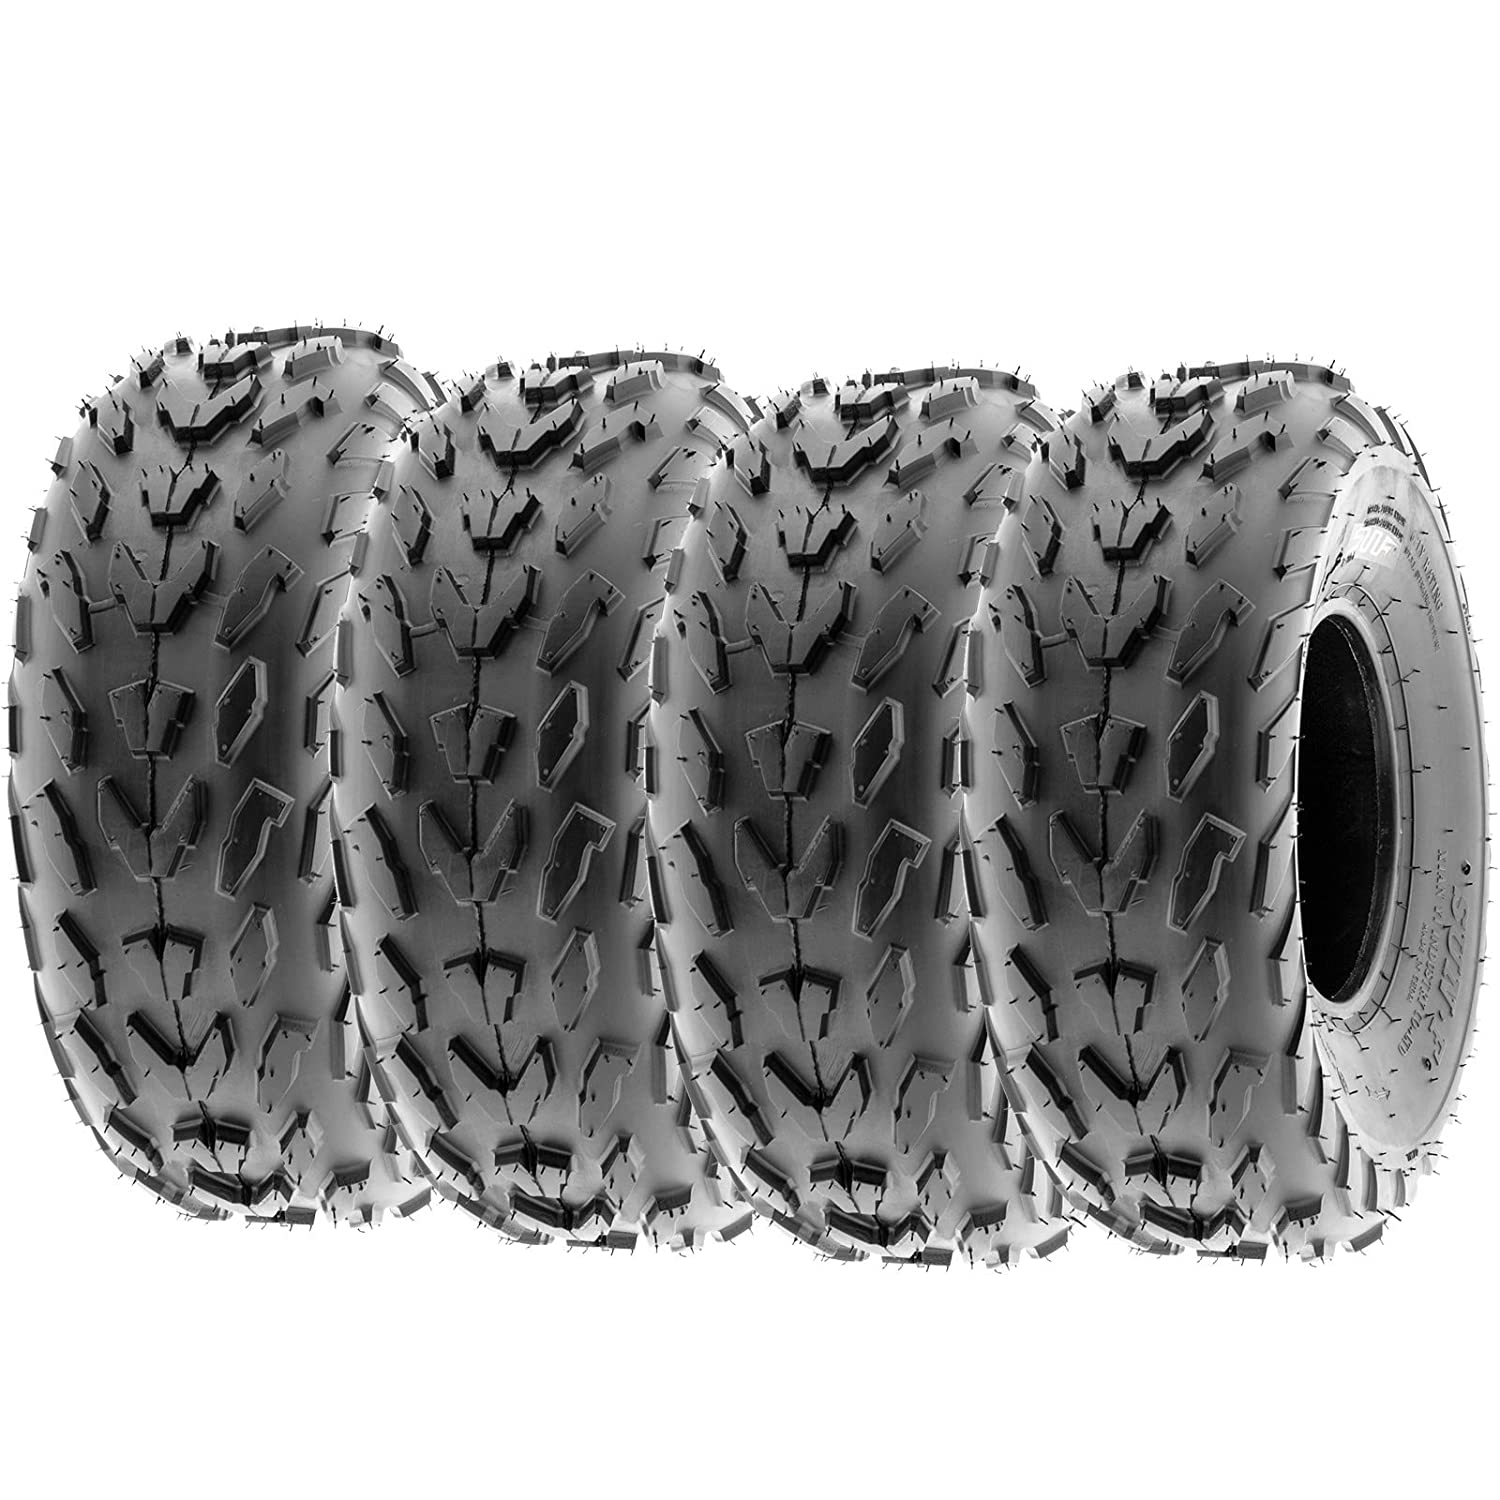 SunF Quad Race Replacement ALL TERRAIN ATV UTV 6 Ply Tires 20x7-8 20x7x8 Tubeless A007, [Set of 4] LCF1|A007|200708||x4